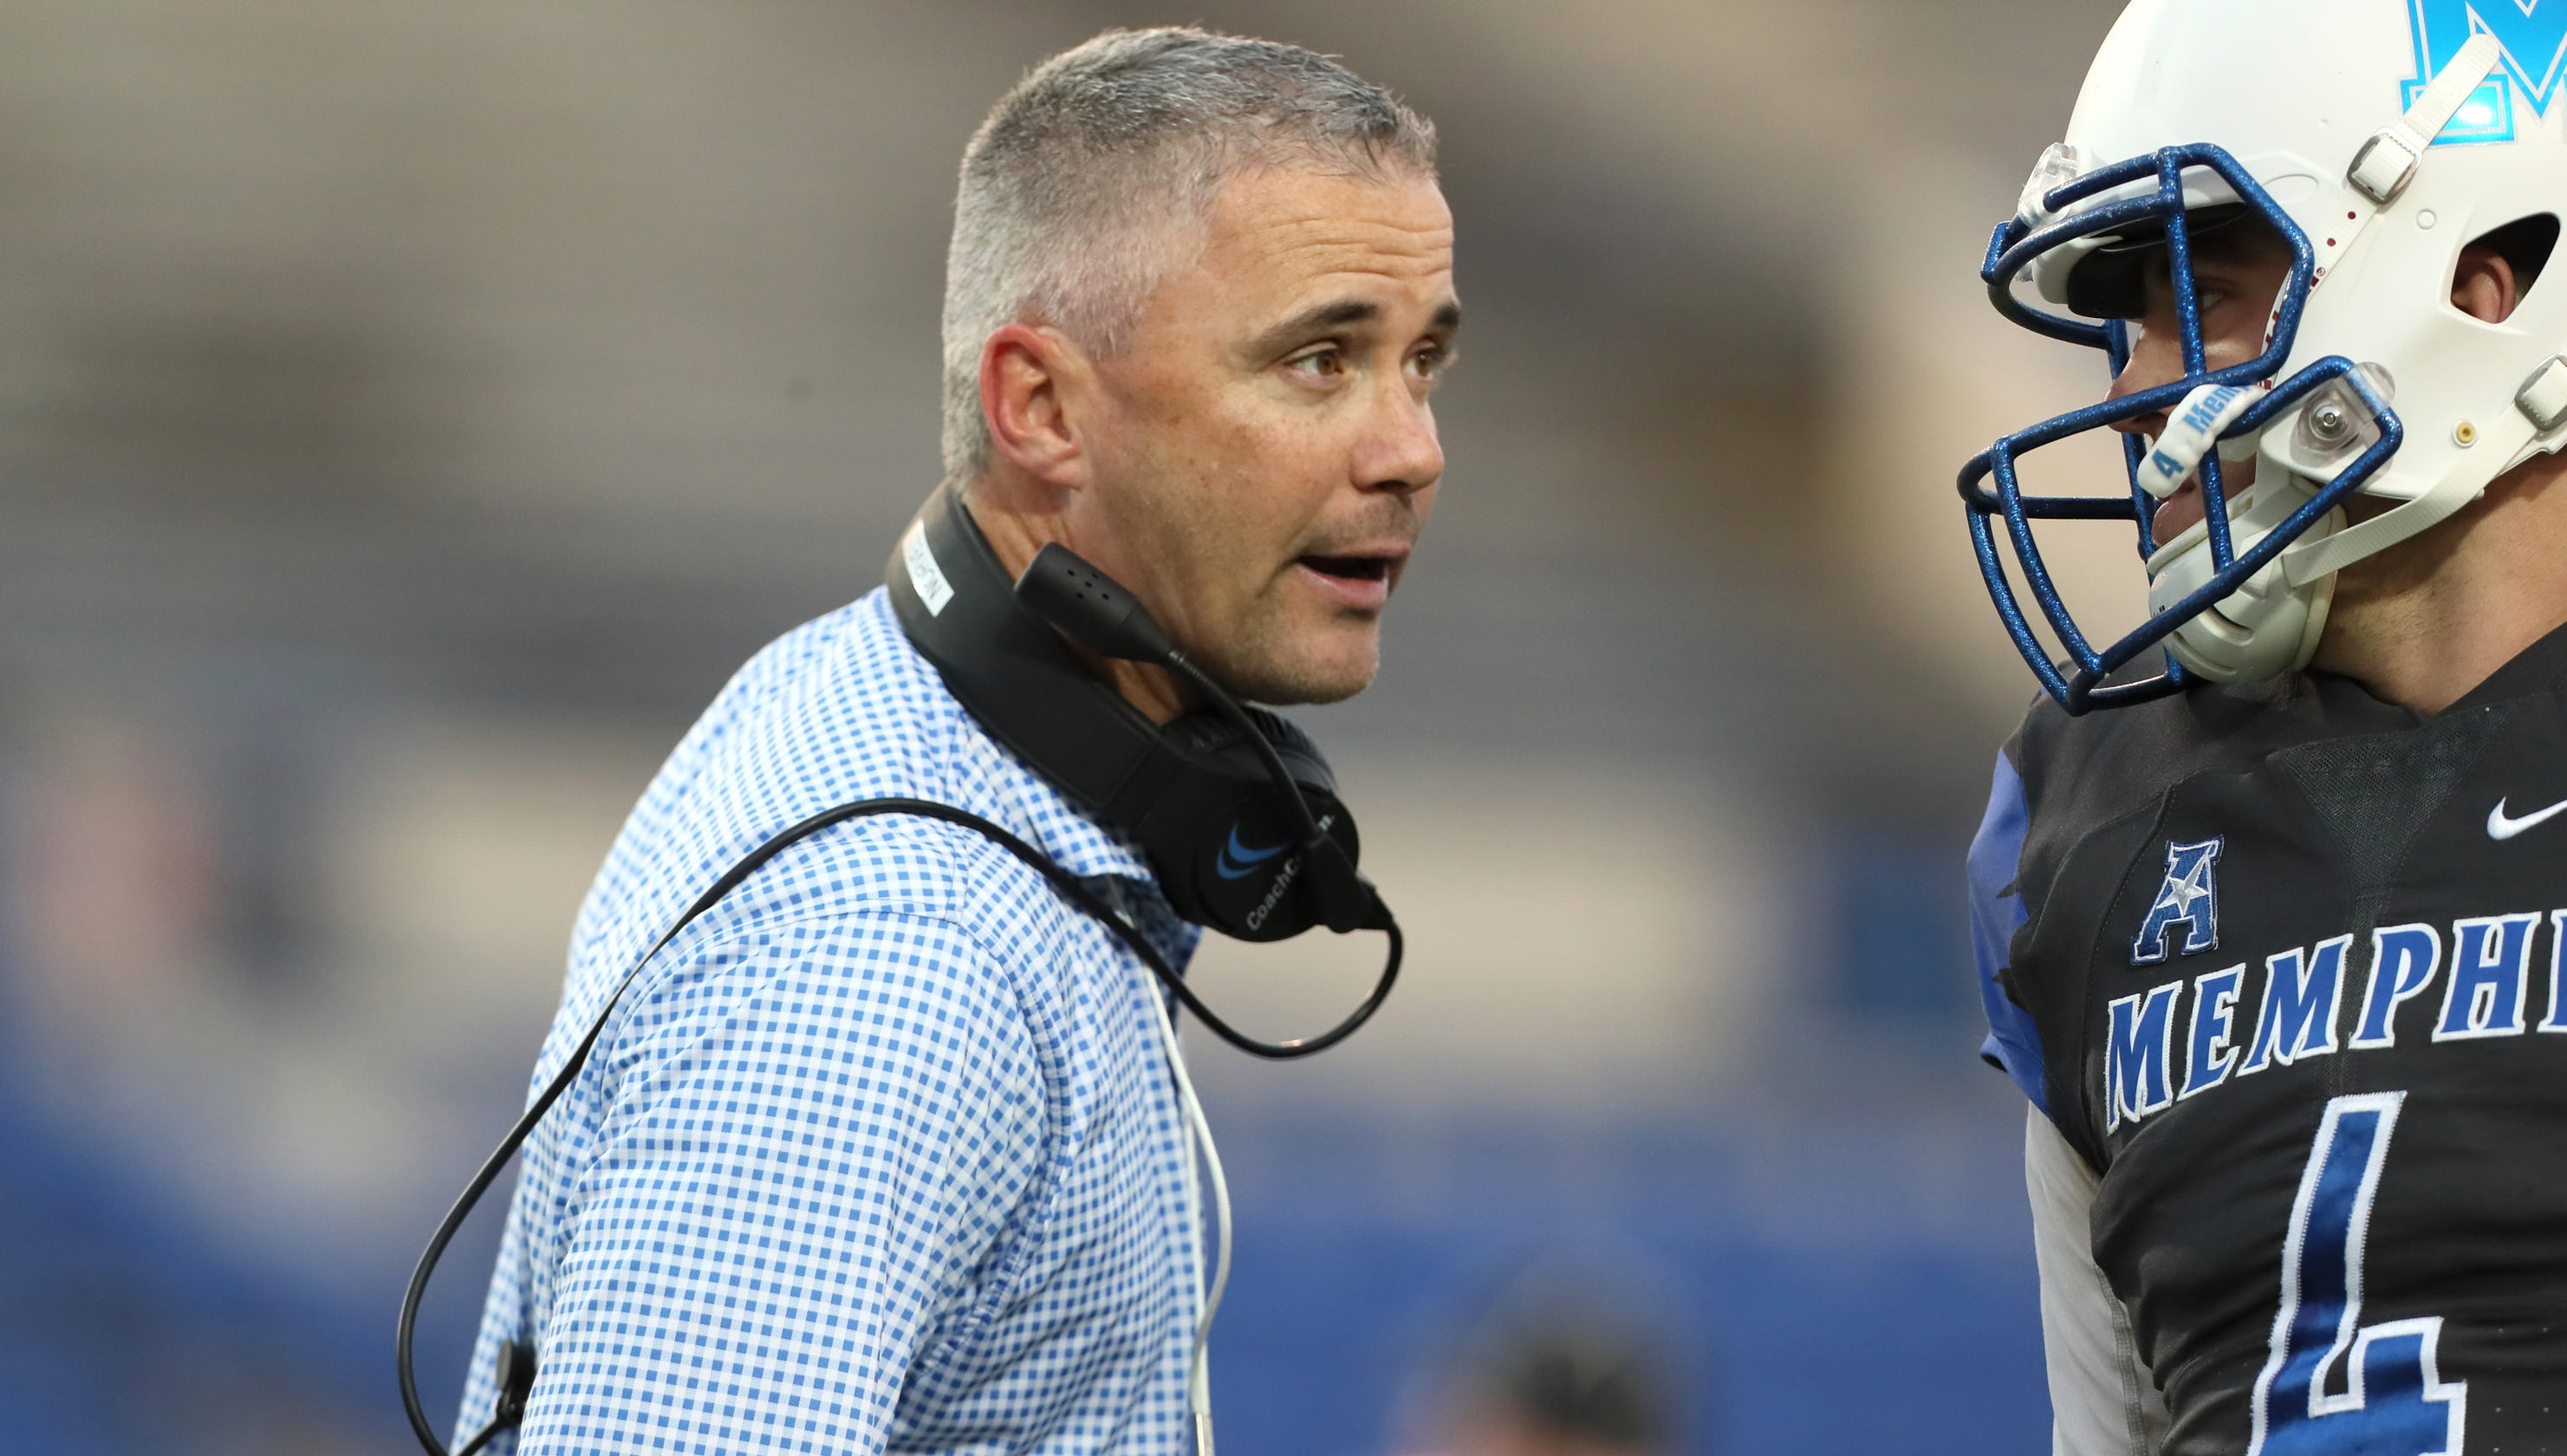 Memphis Football Mike Norvell Moves Ahead After Brady